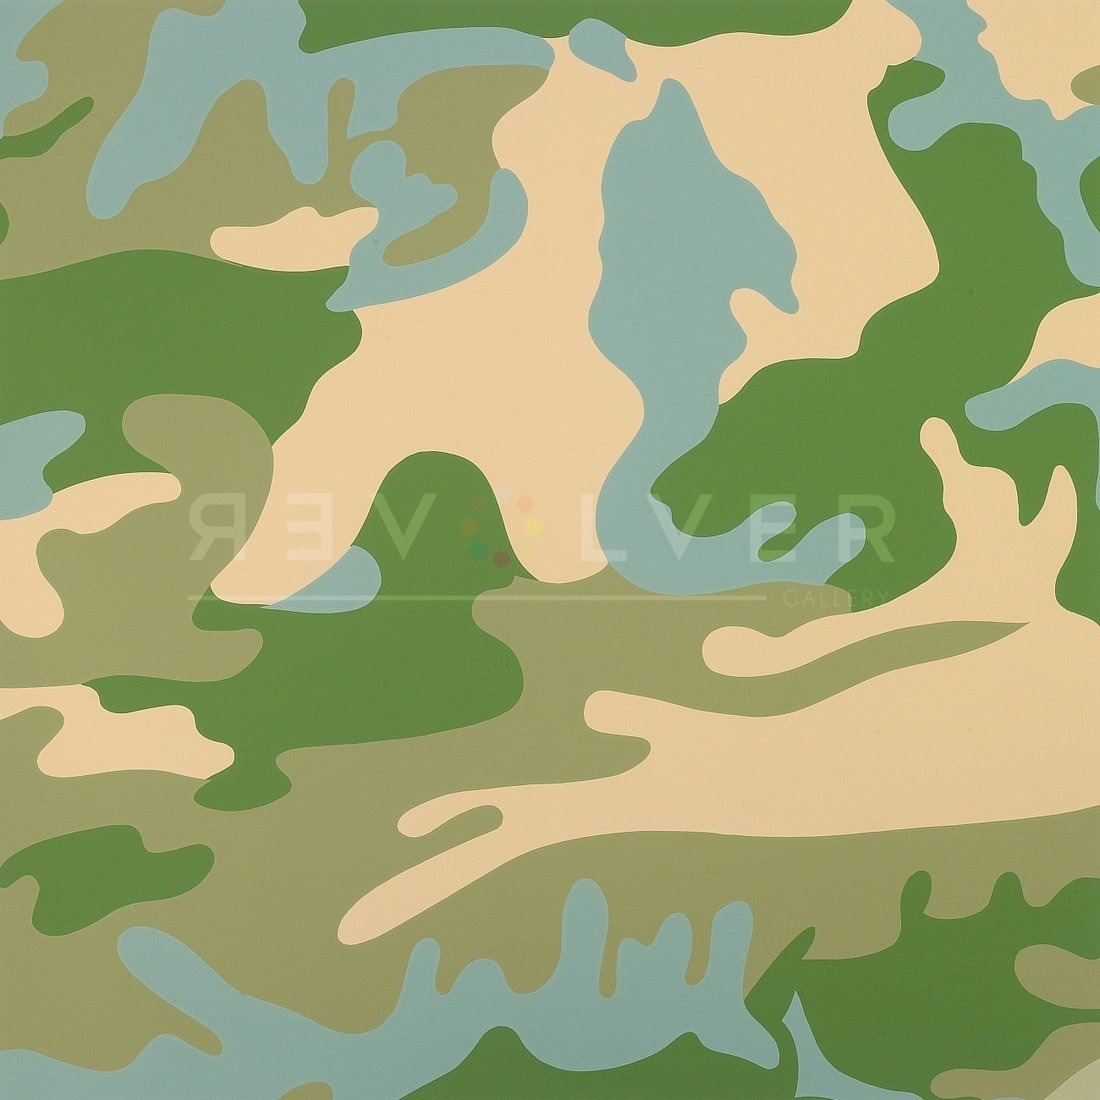 Andy Warhol Camouflage 407